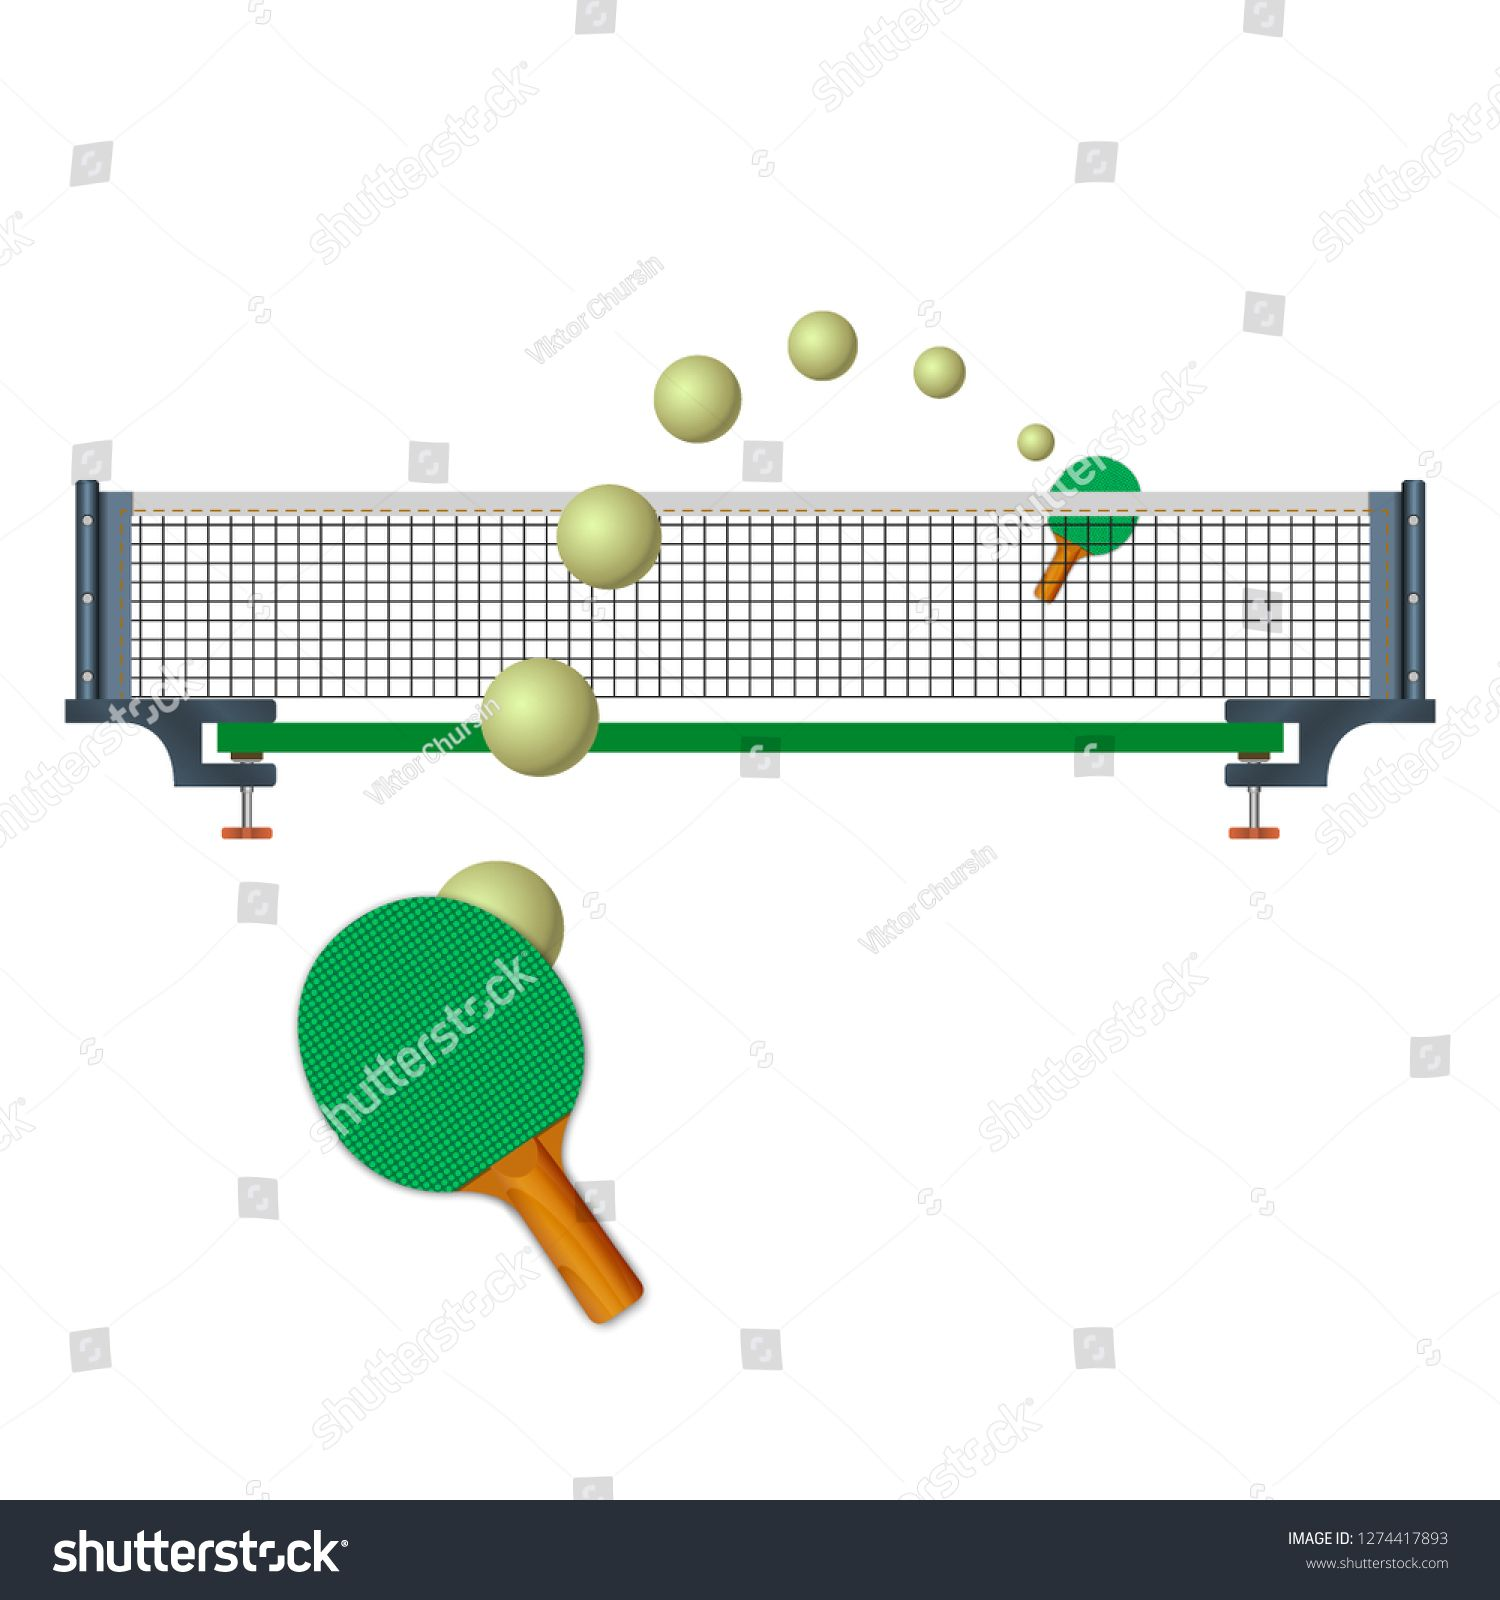 Net For Table Tennis Ping Pong Sports Equipment Vector Illustration On A White Background Ad Affiliate Ping Pong T Table Tennis Ping Pong Tennis Nets